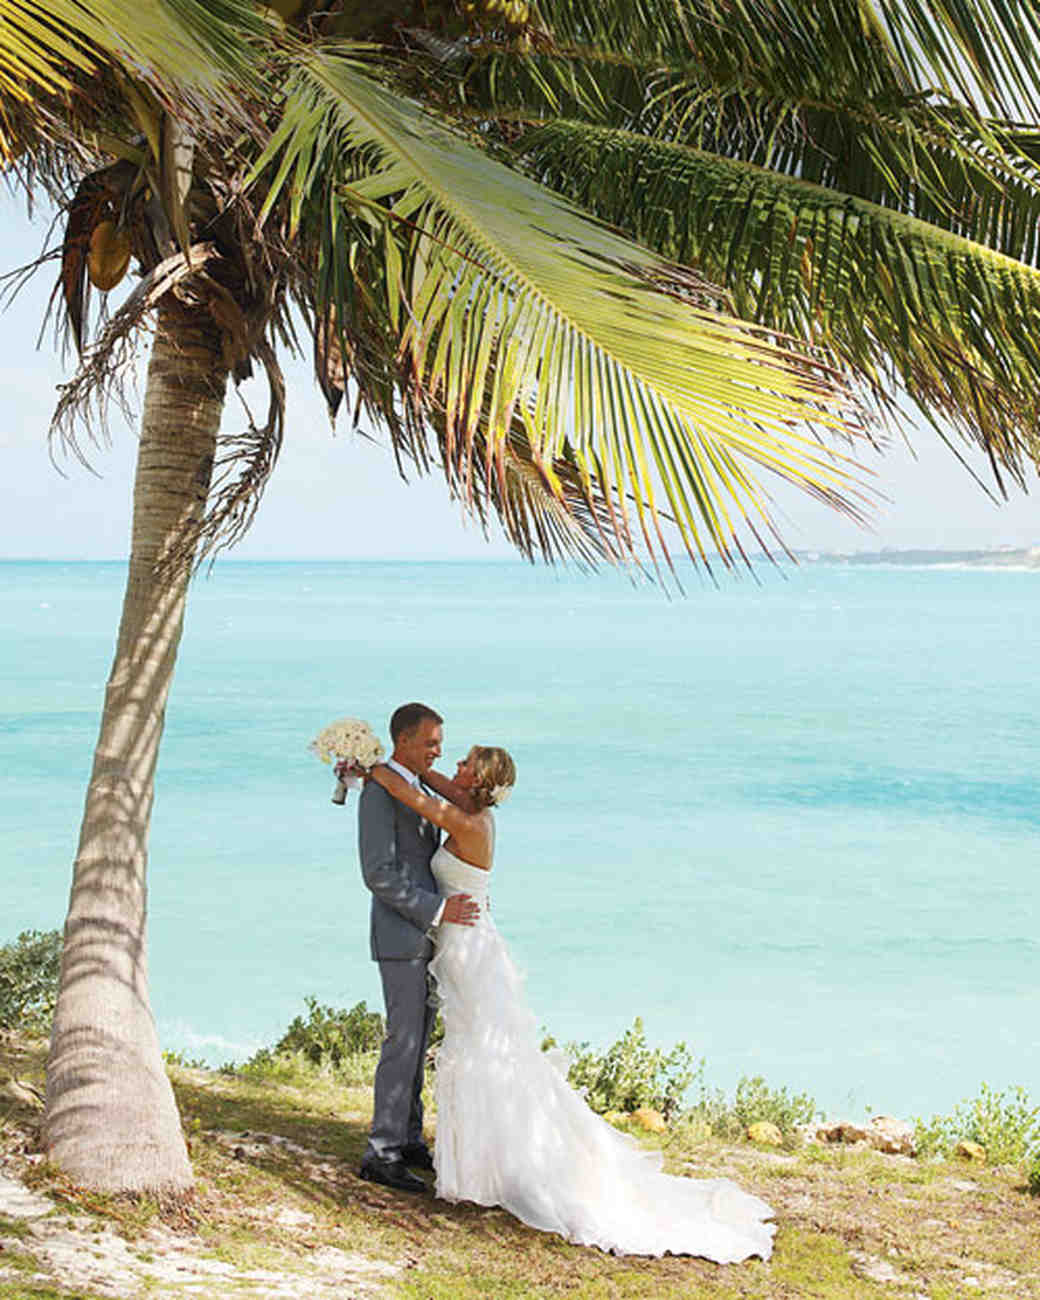 A White And Silver Destination Wedding On The Beach In Bahamas